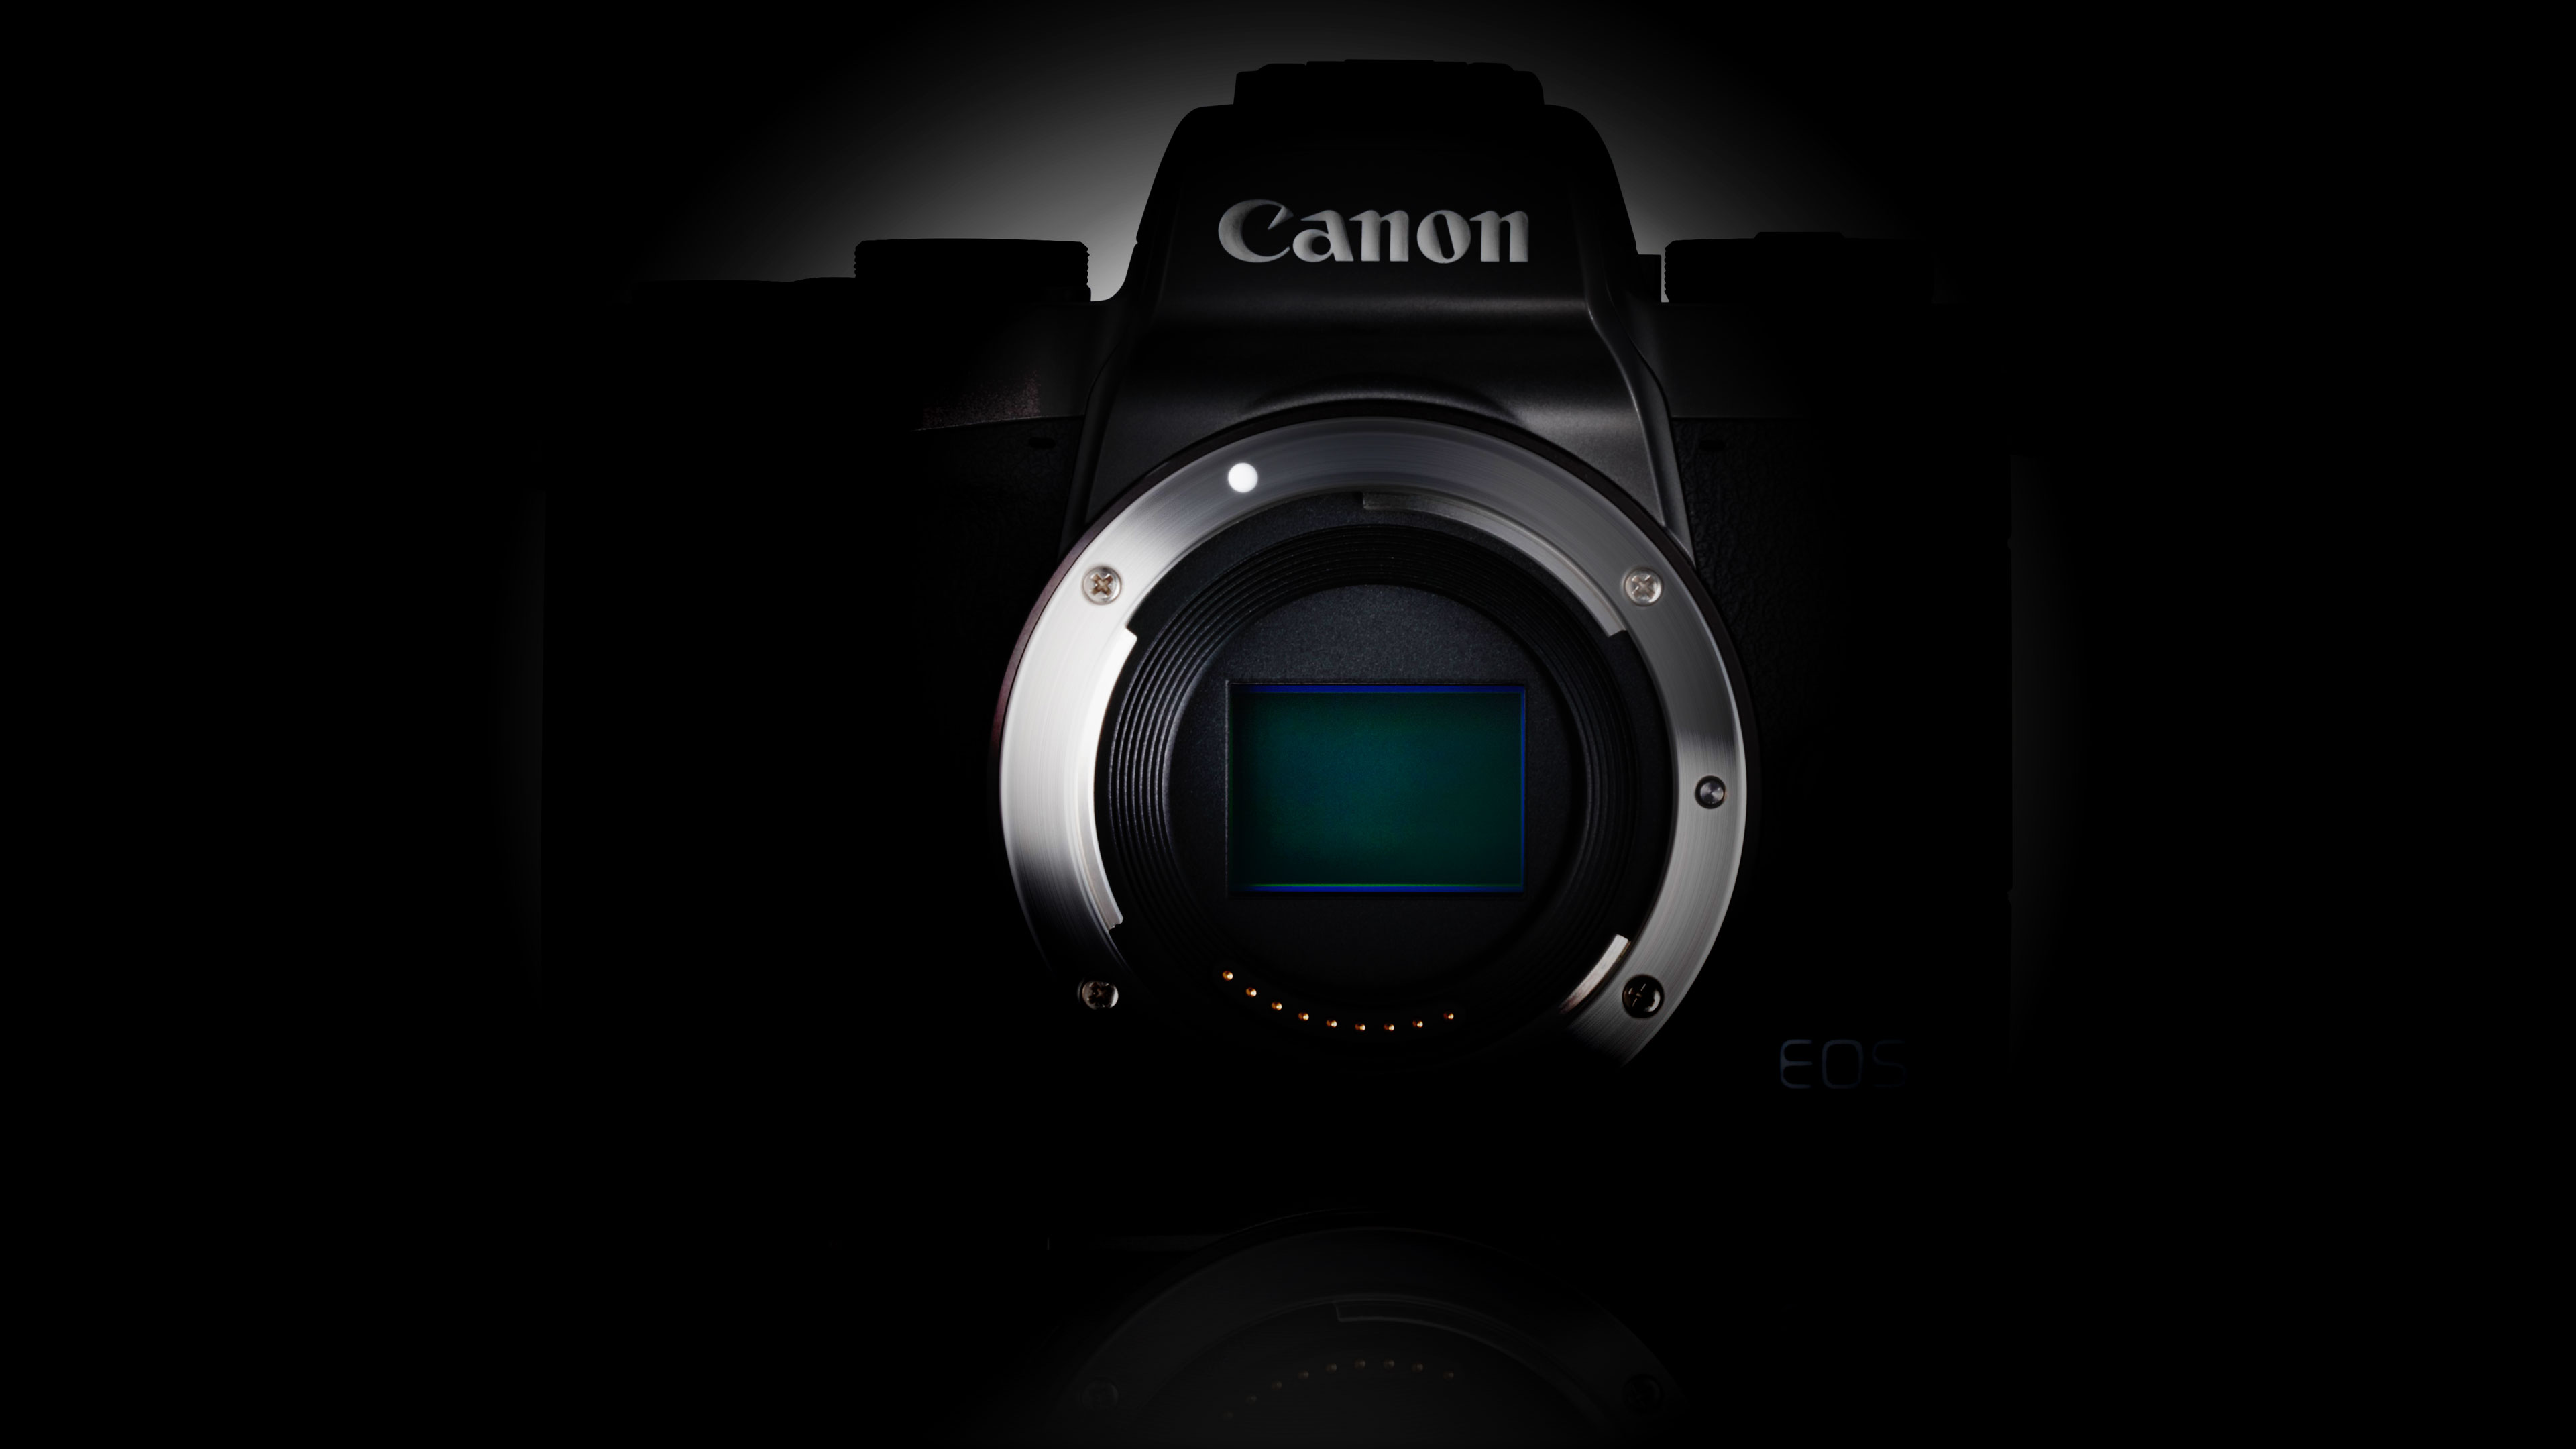 Rumors emerge of a new Canon APS-C mirrorless model as soon as